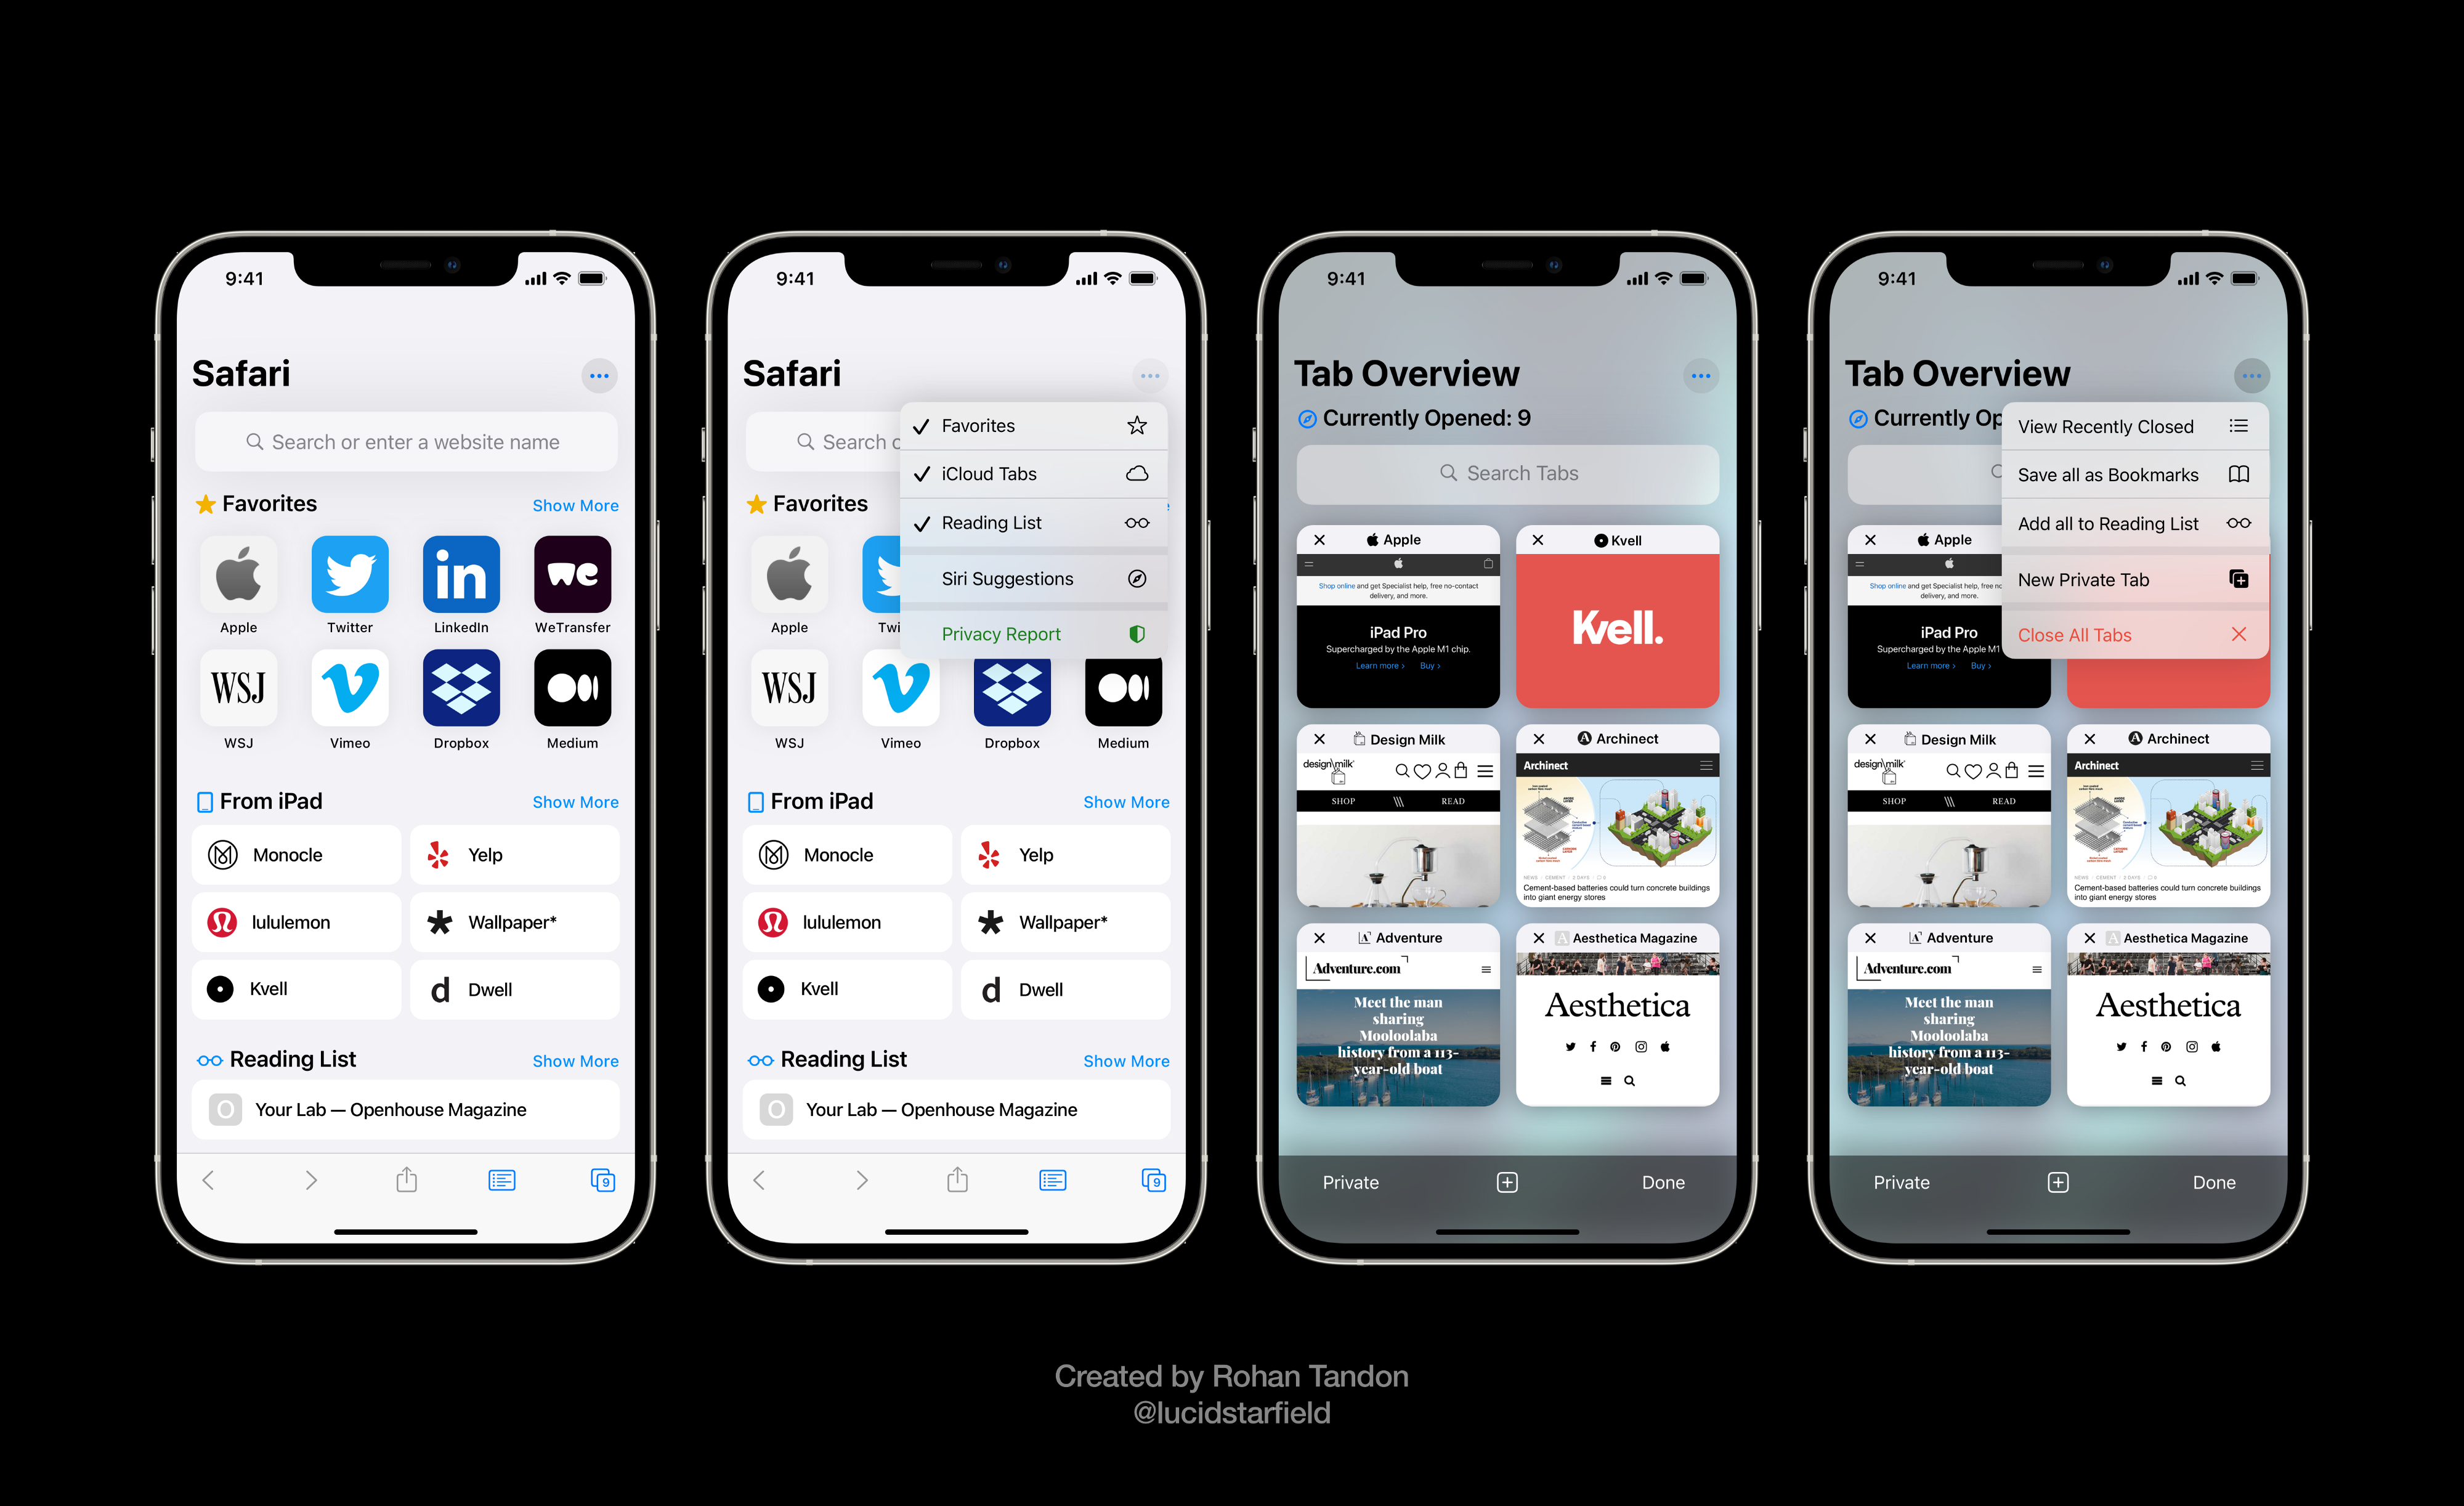 iOS 15 Aurora visualizes an all-new Safari with a coherent start page and birds-eye view for all open tabs.